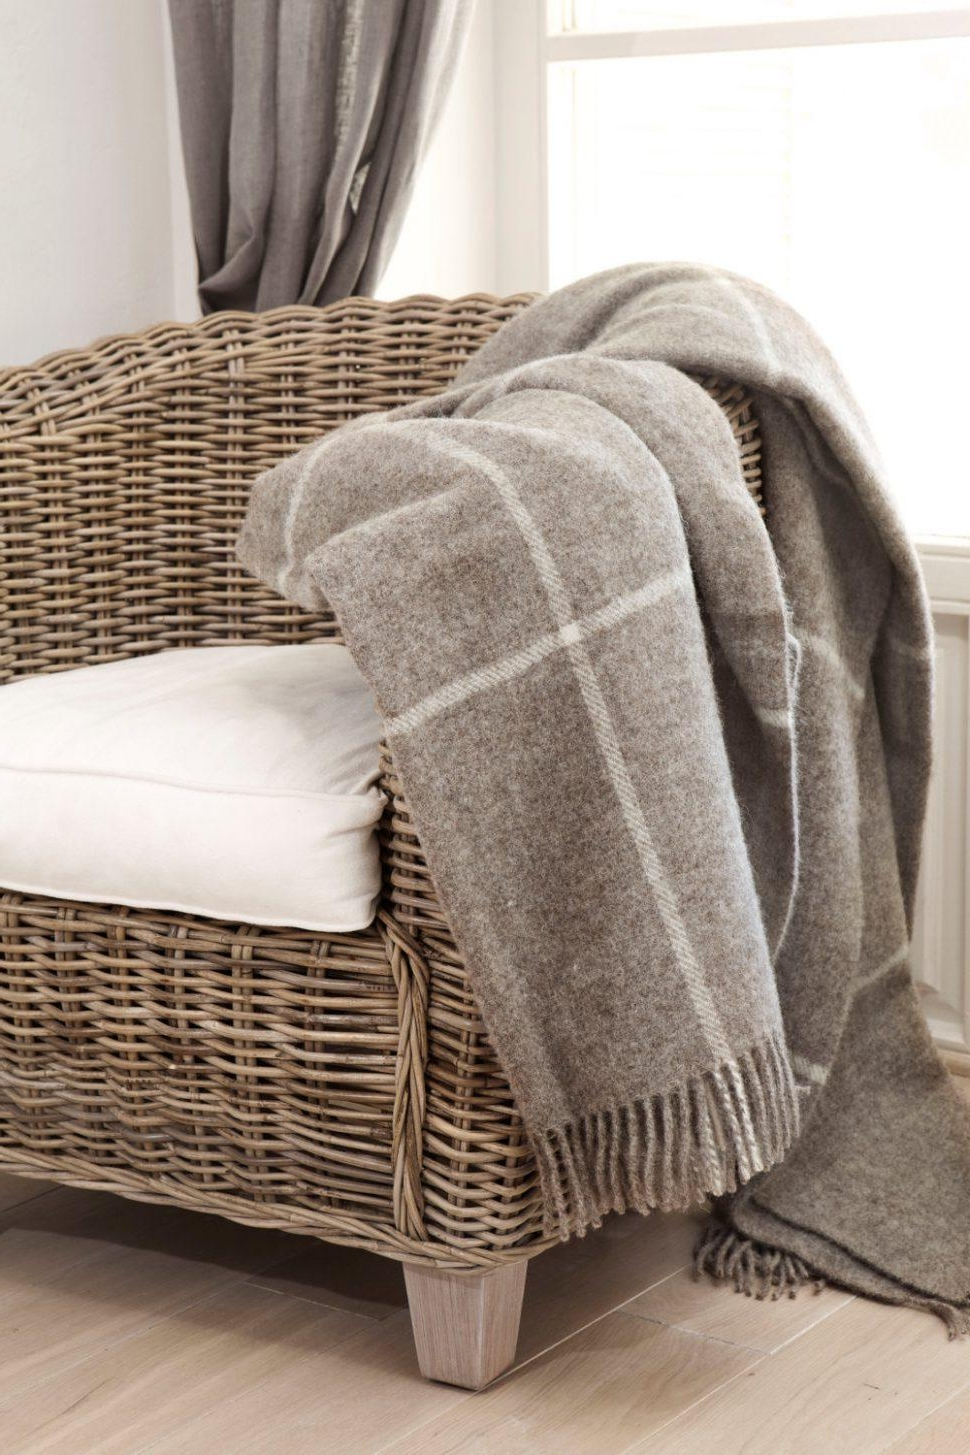 Trendy Cotton Throws For Sofas And Chairs Intended For Cotton Throws For Sofas Sophisticated Throw For Couch Farmhouse (View 18 of 20)